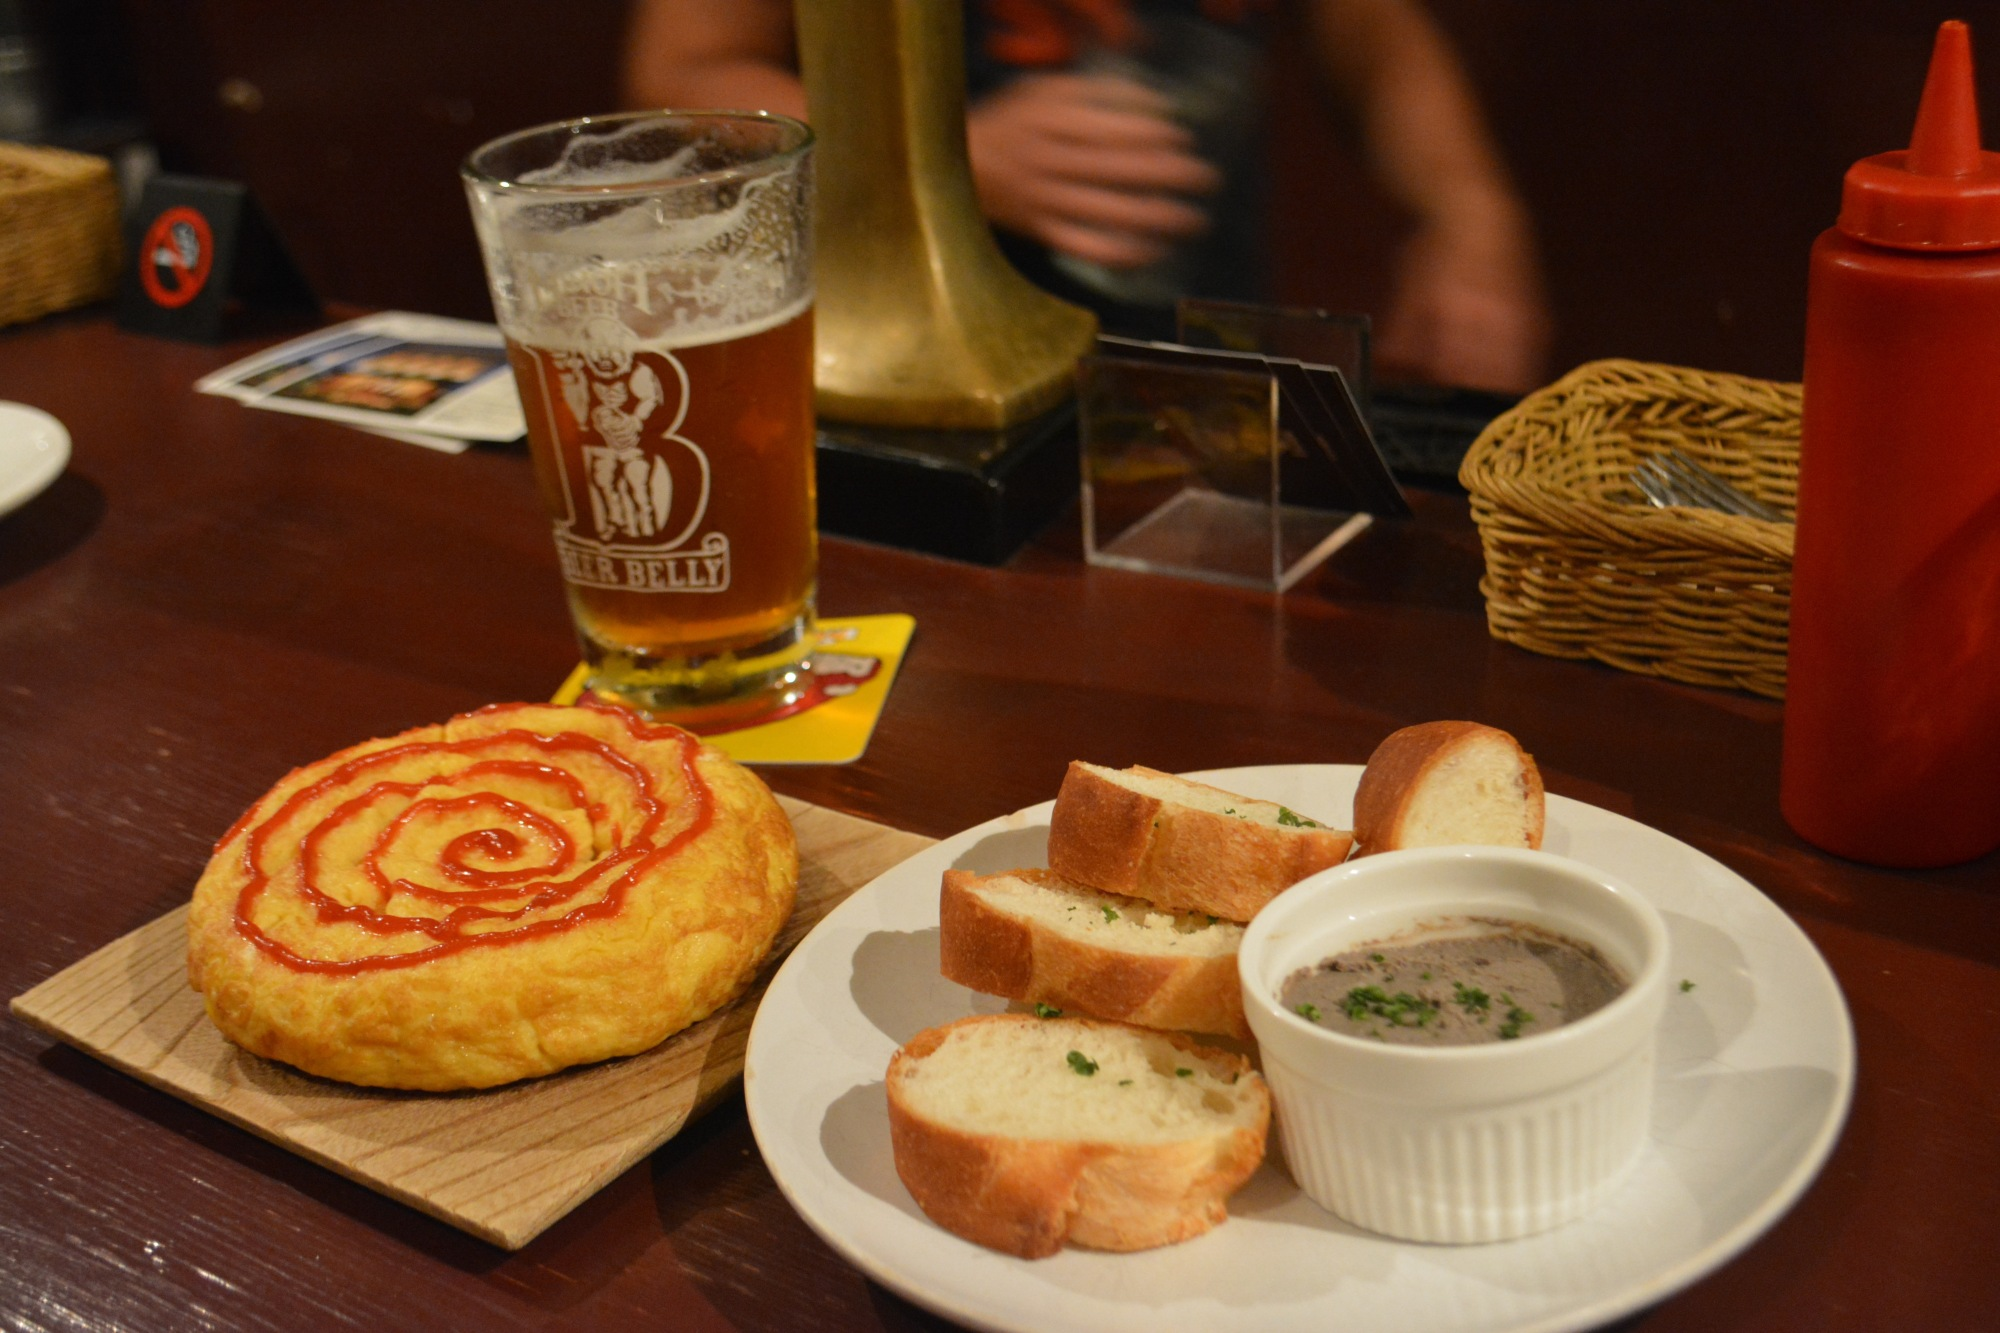 Tapas selection: Spanish omelet and liver pate at Minoh's Beer Belly. | J.J. O'DONOGHUE